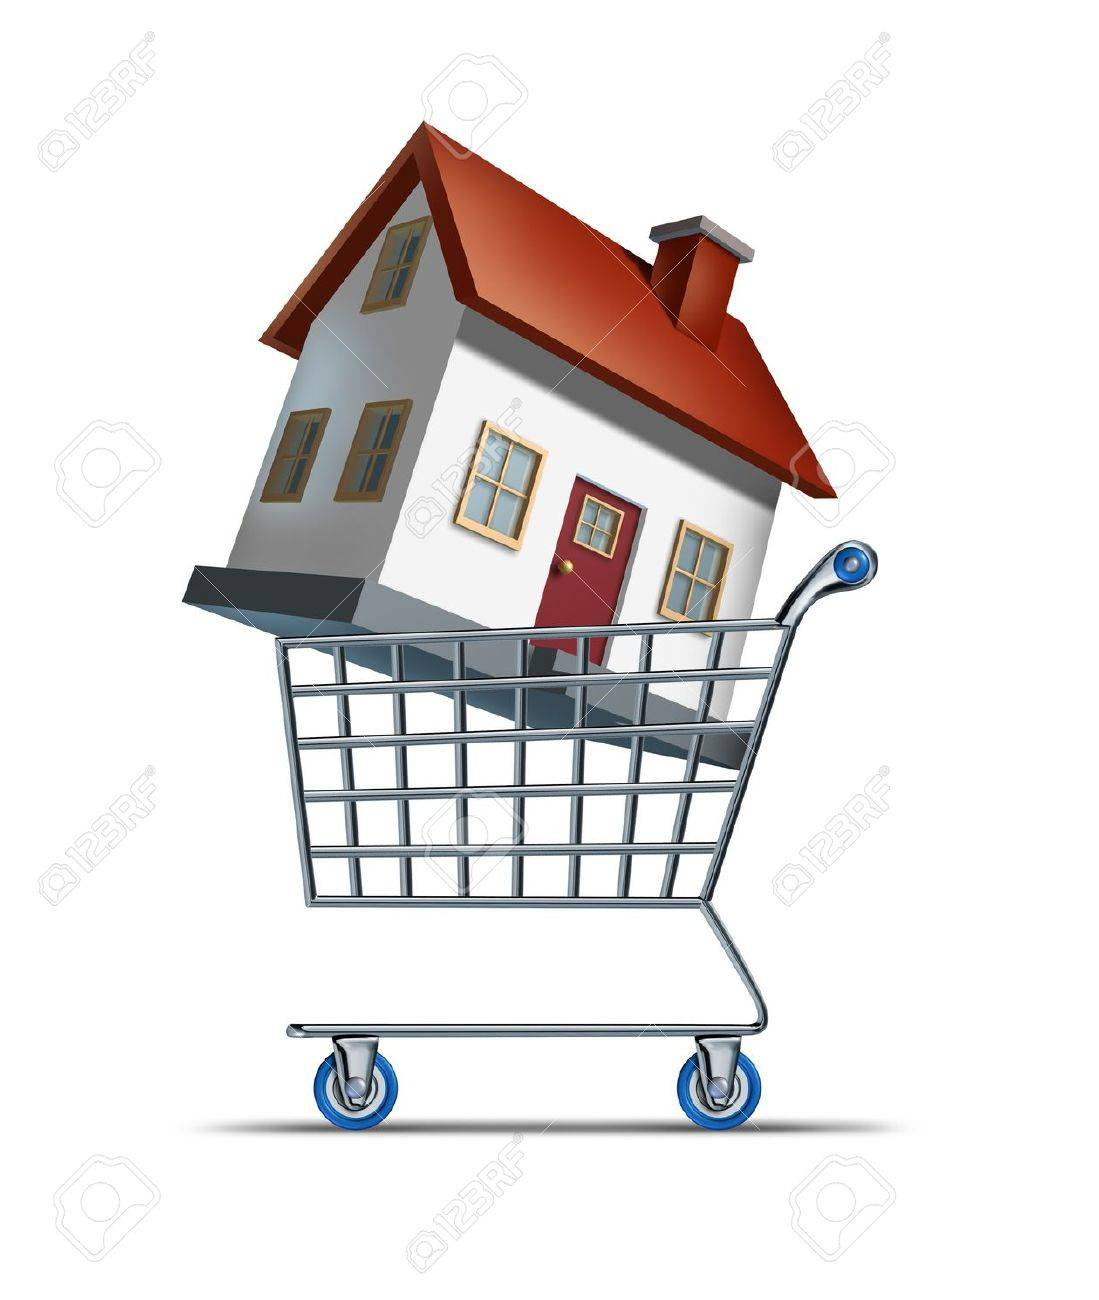 House shopping and buying homes as a real estate market symbol with a shop cart and a three dimensional family residence representing the building and construction industry sales on a whte background - 13559403